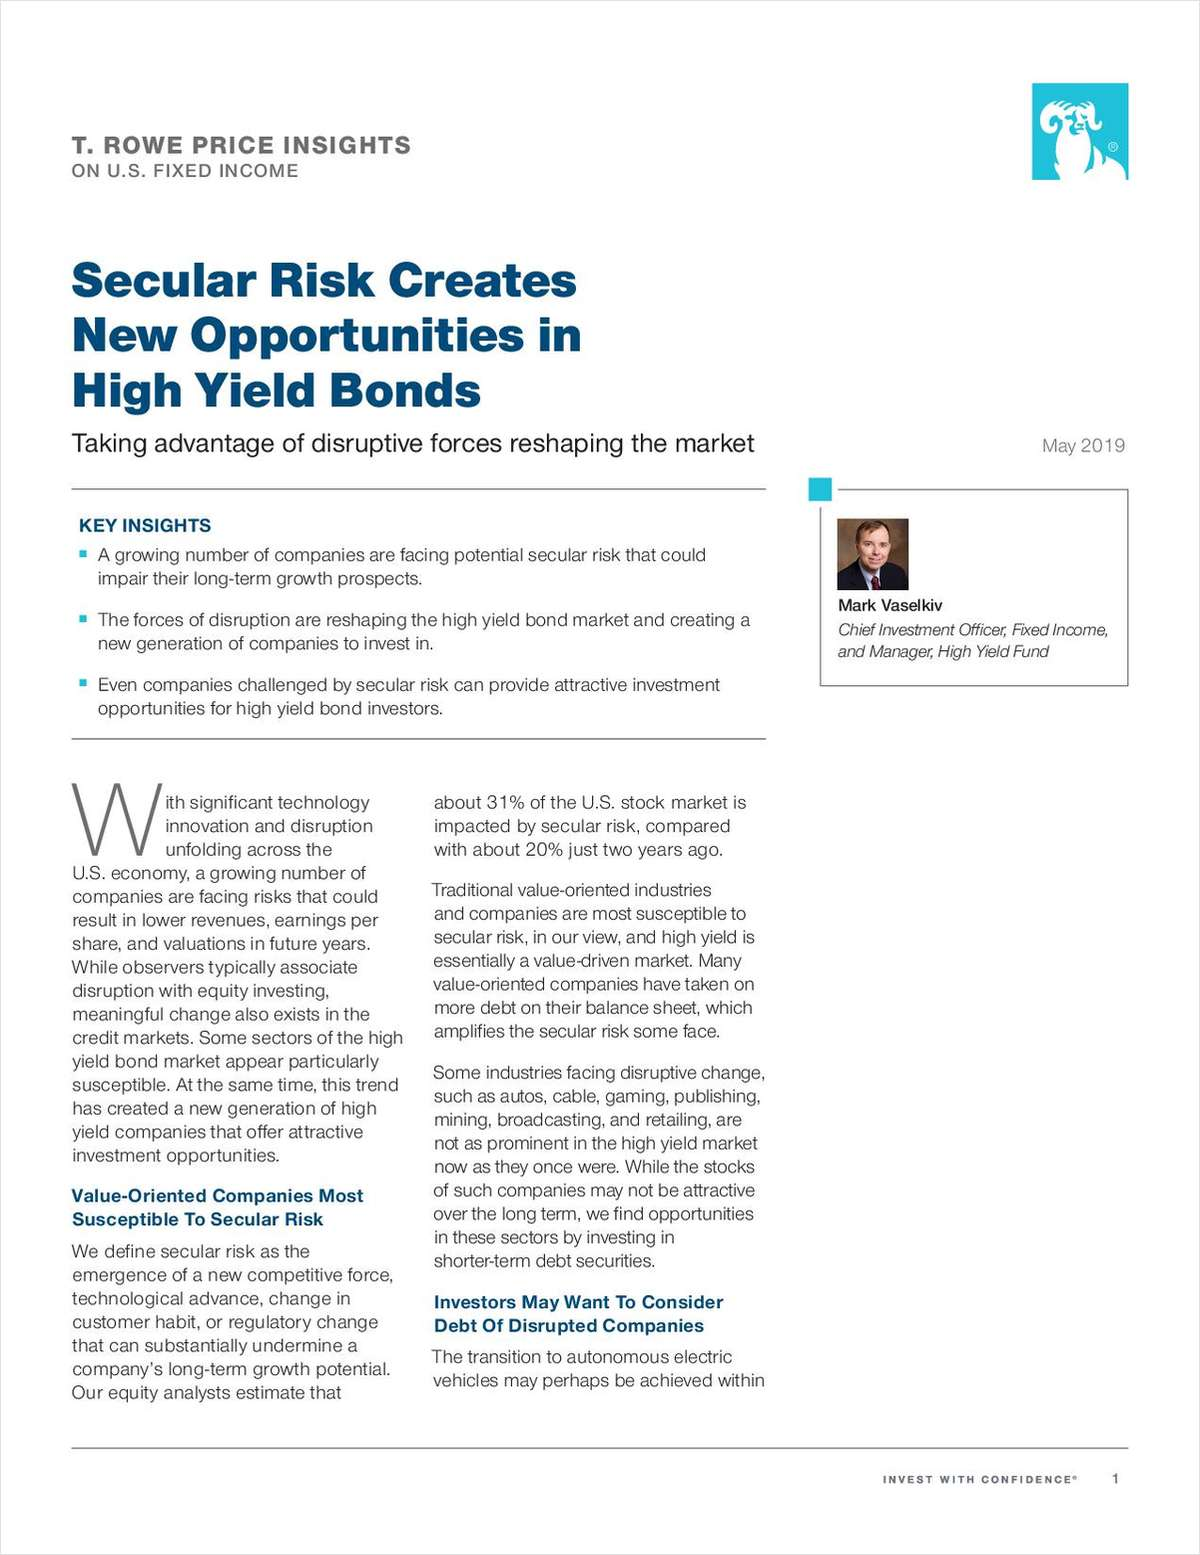 Secular Risk Creates New Opportunities in High Yield Bonds